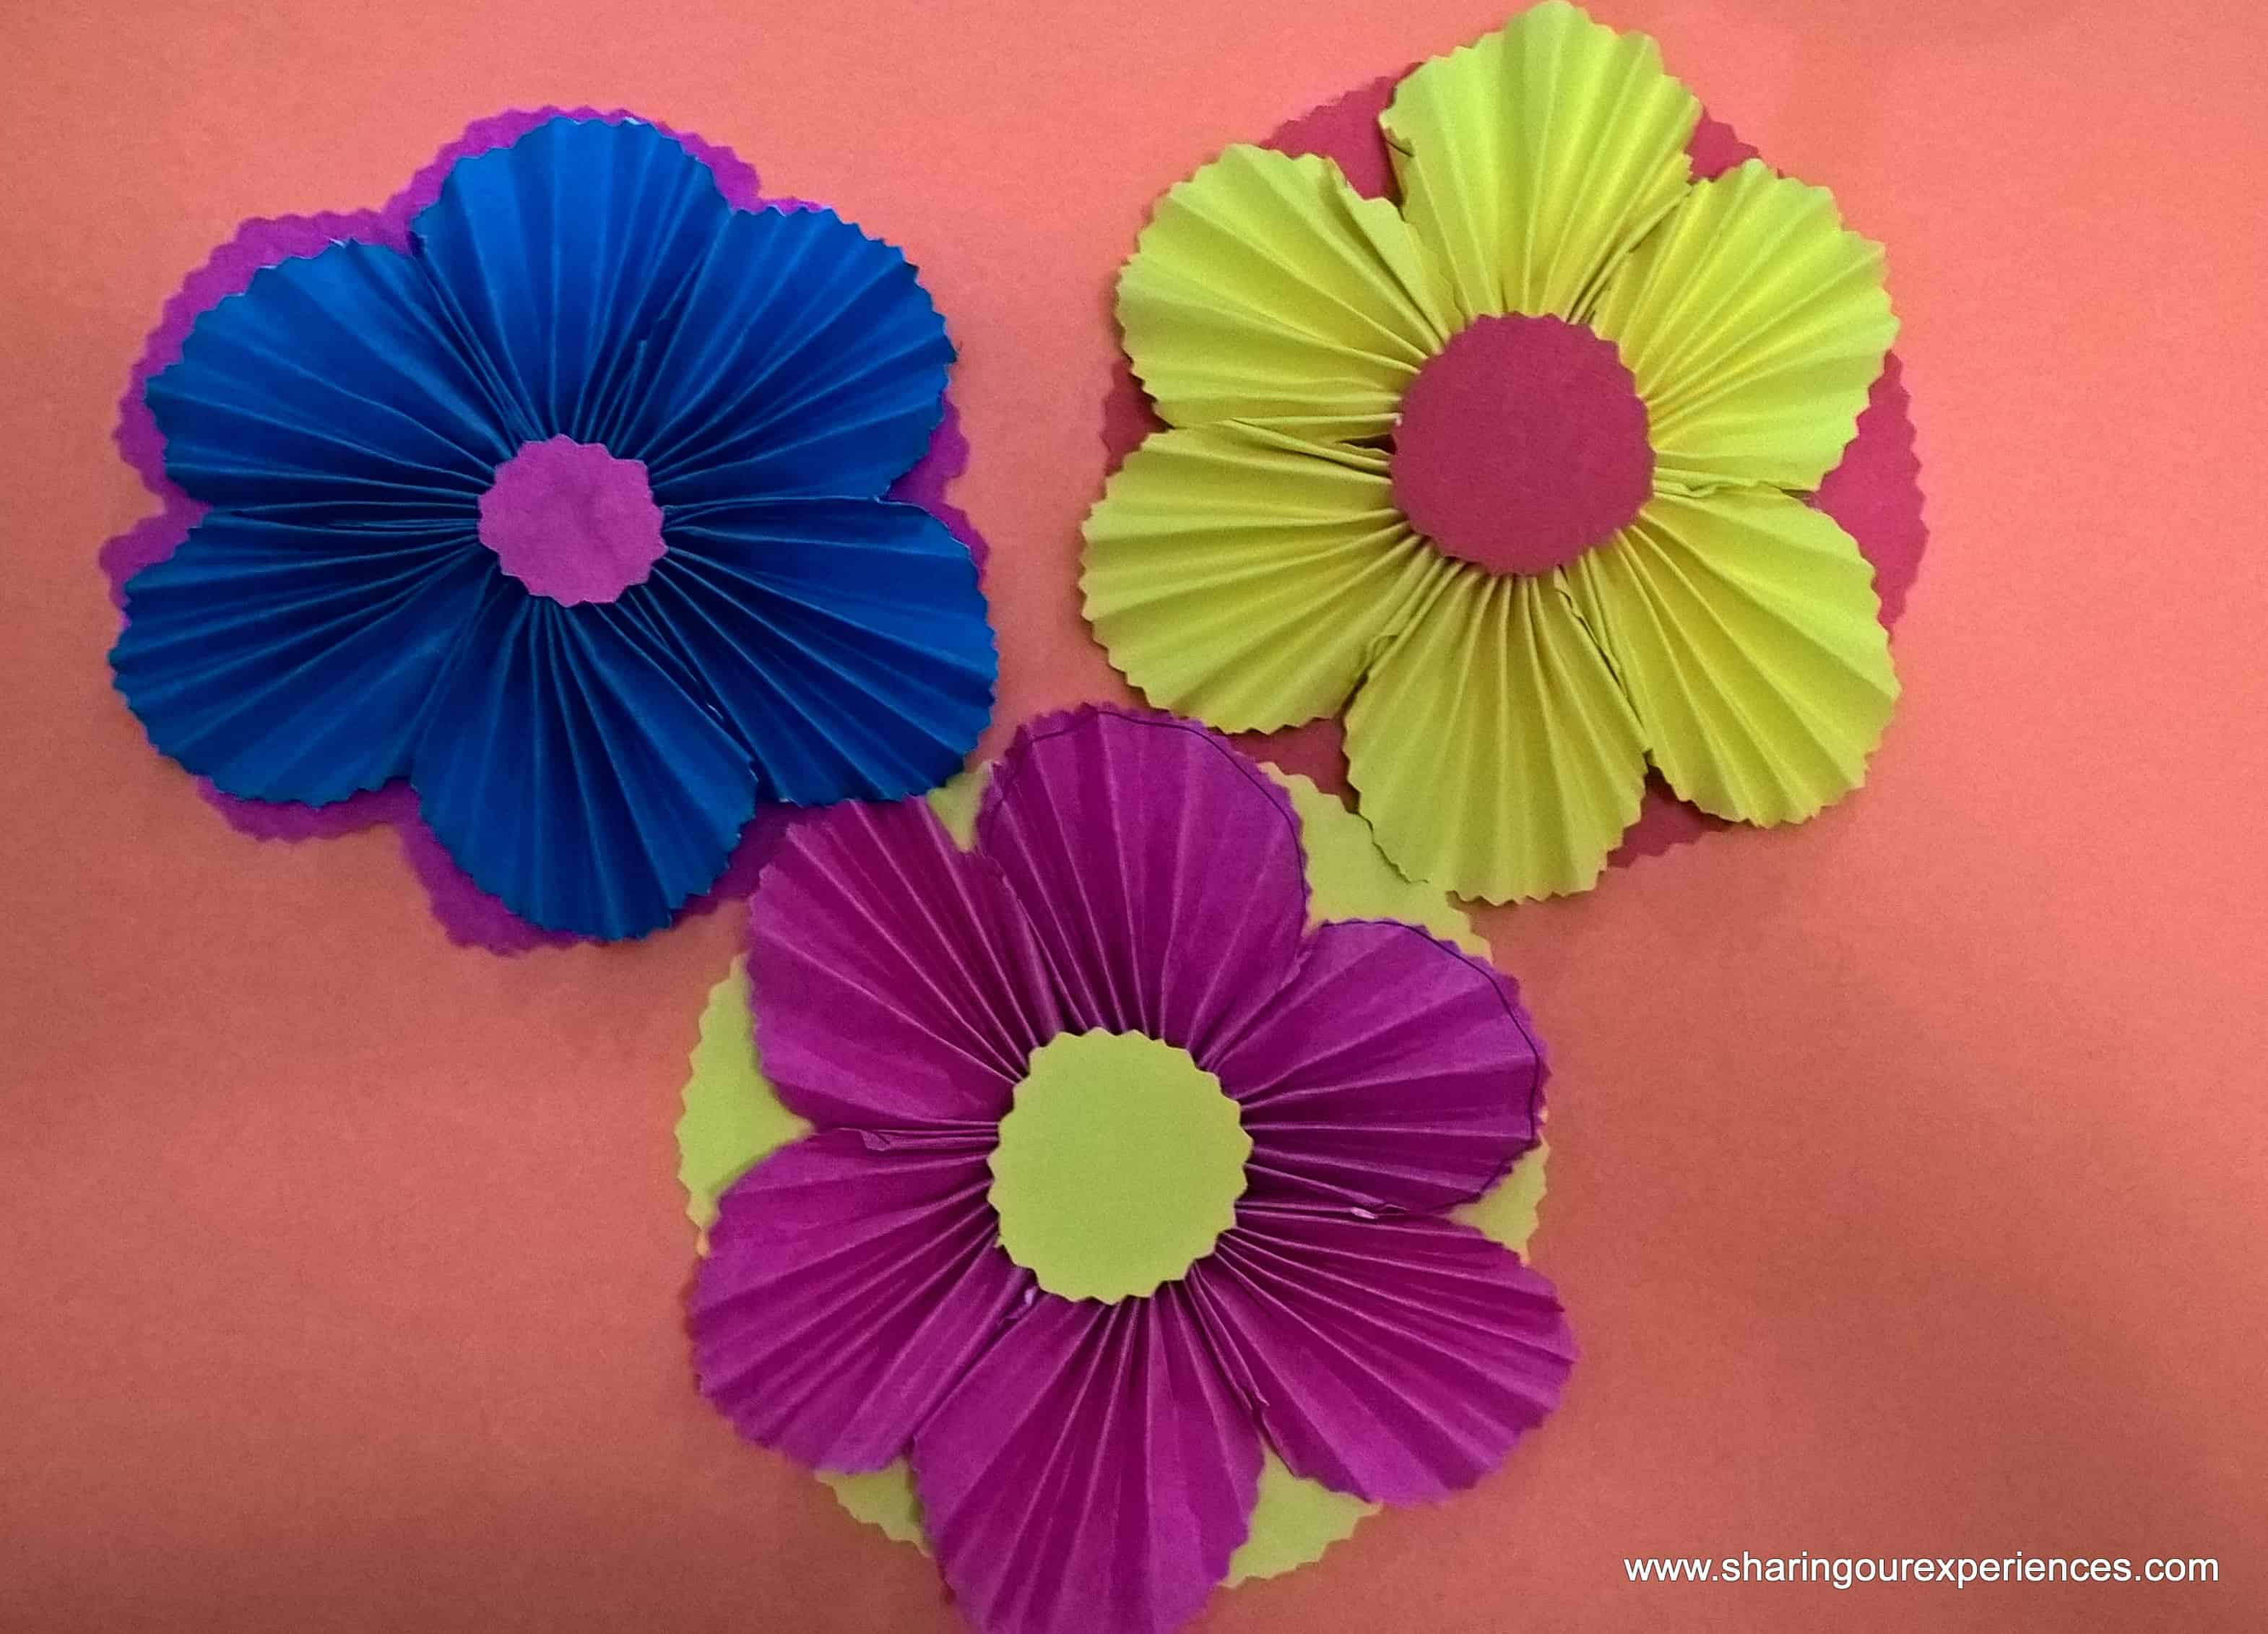 How to make Paper Flowers ? | Sharing Our Experiences